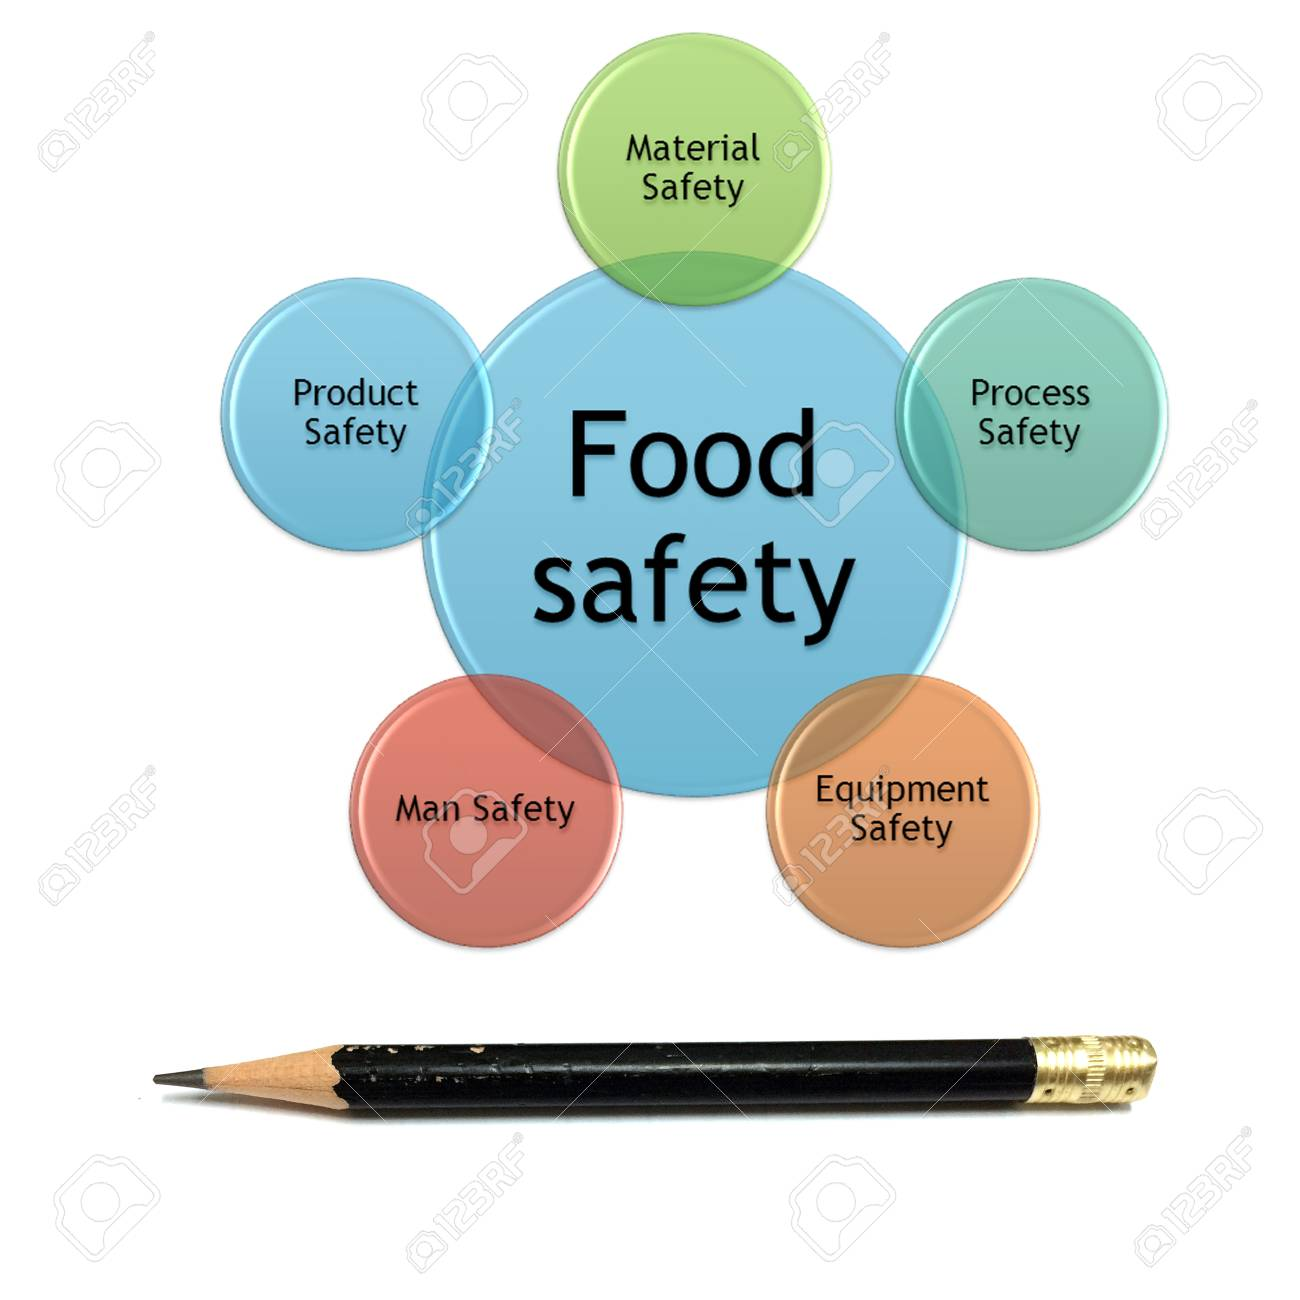 picture diagram of food safety management concept stock photo - 95682708